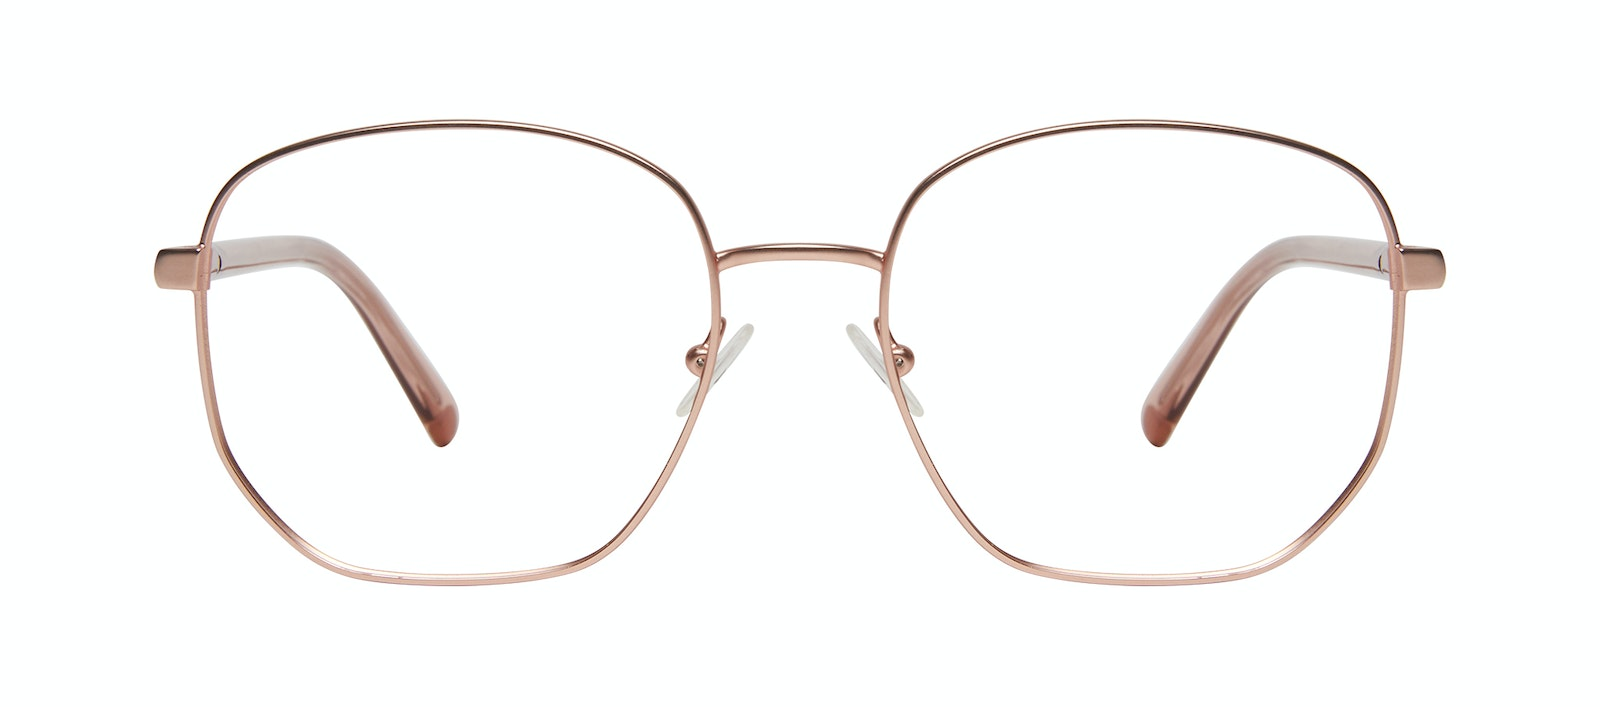 Affordable Fashion Glasses Round Eyeglasses Women Laïka Rose Gold Matte Front